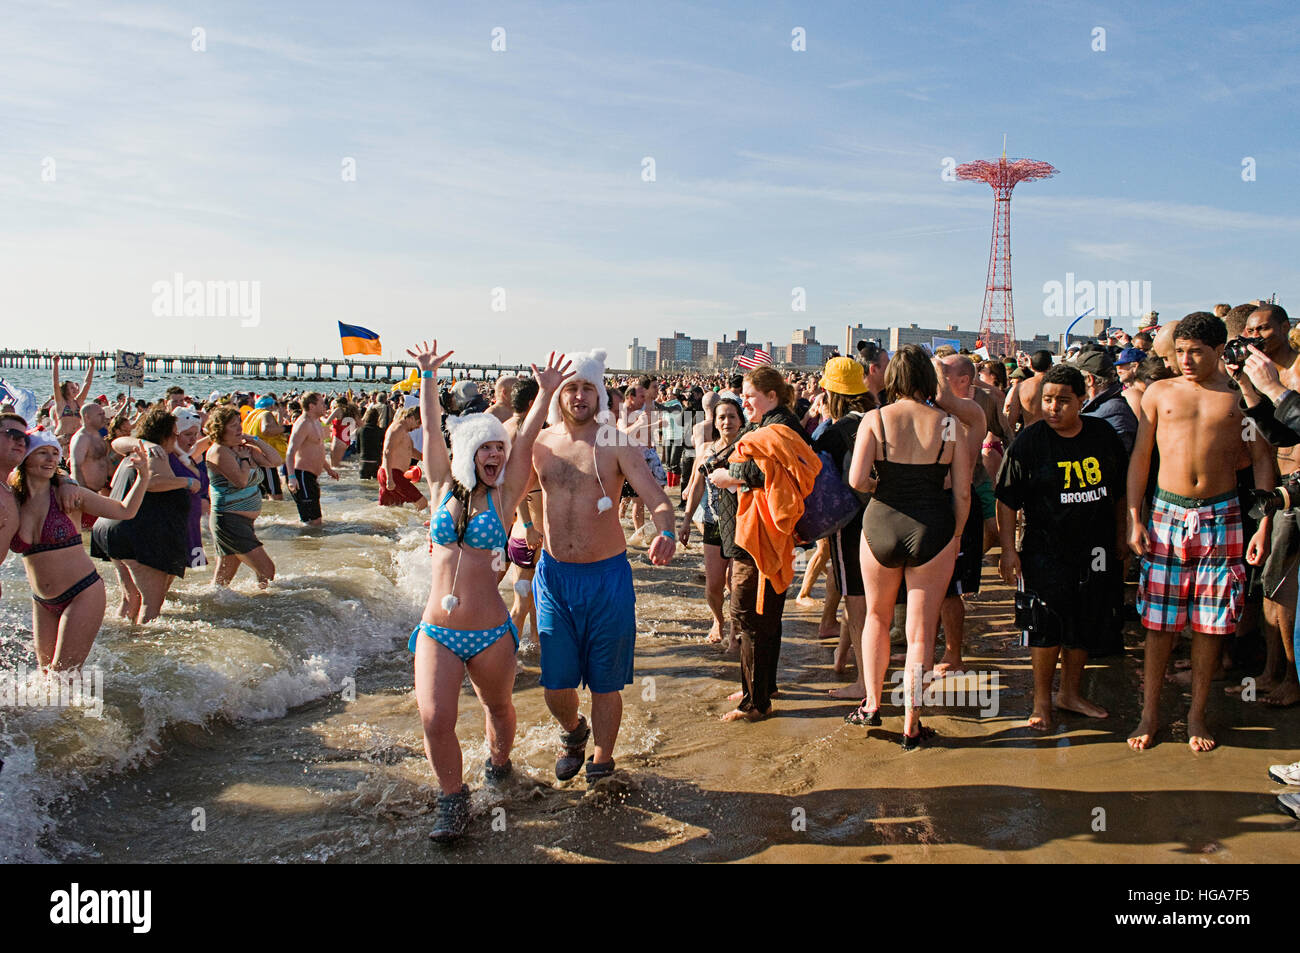 The Coney Island New Years day polar bear plunge, 2012 - Stock Image